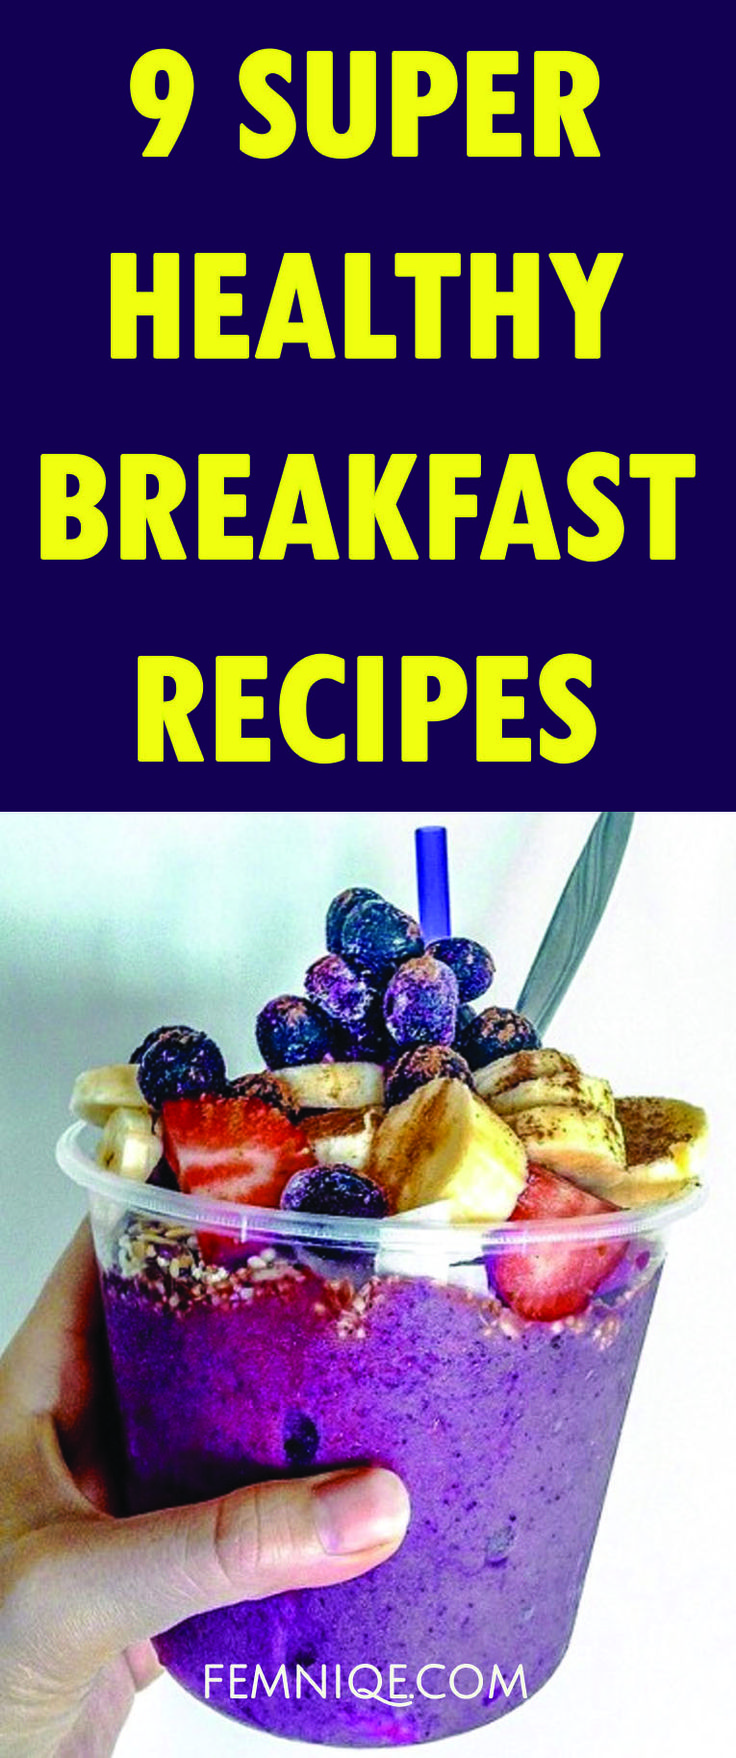 9 Super Healthy Breakfast Recipes For Weight Loss ...